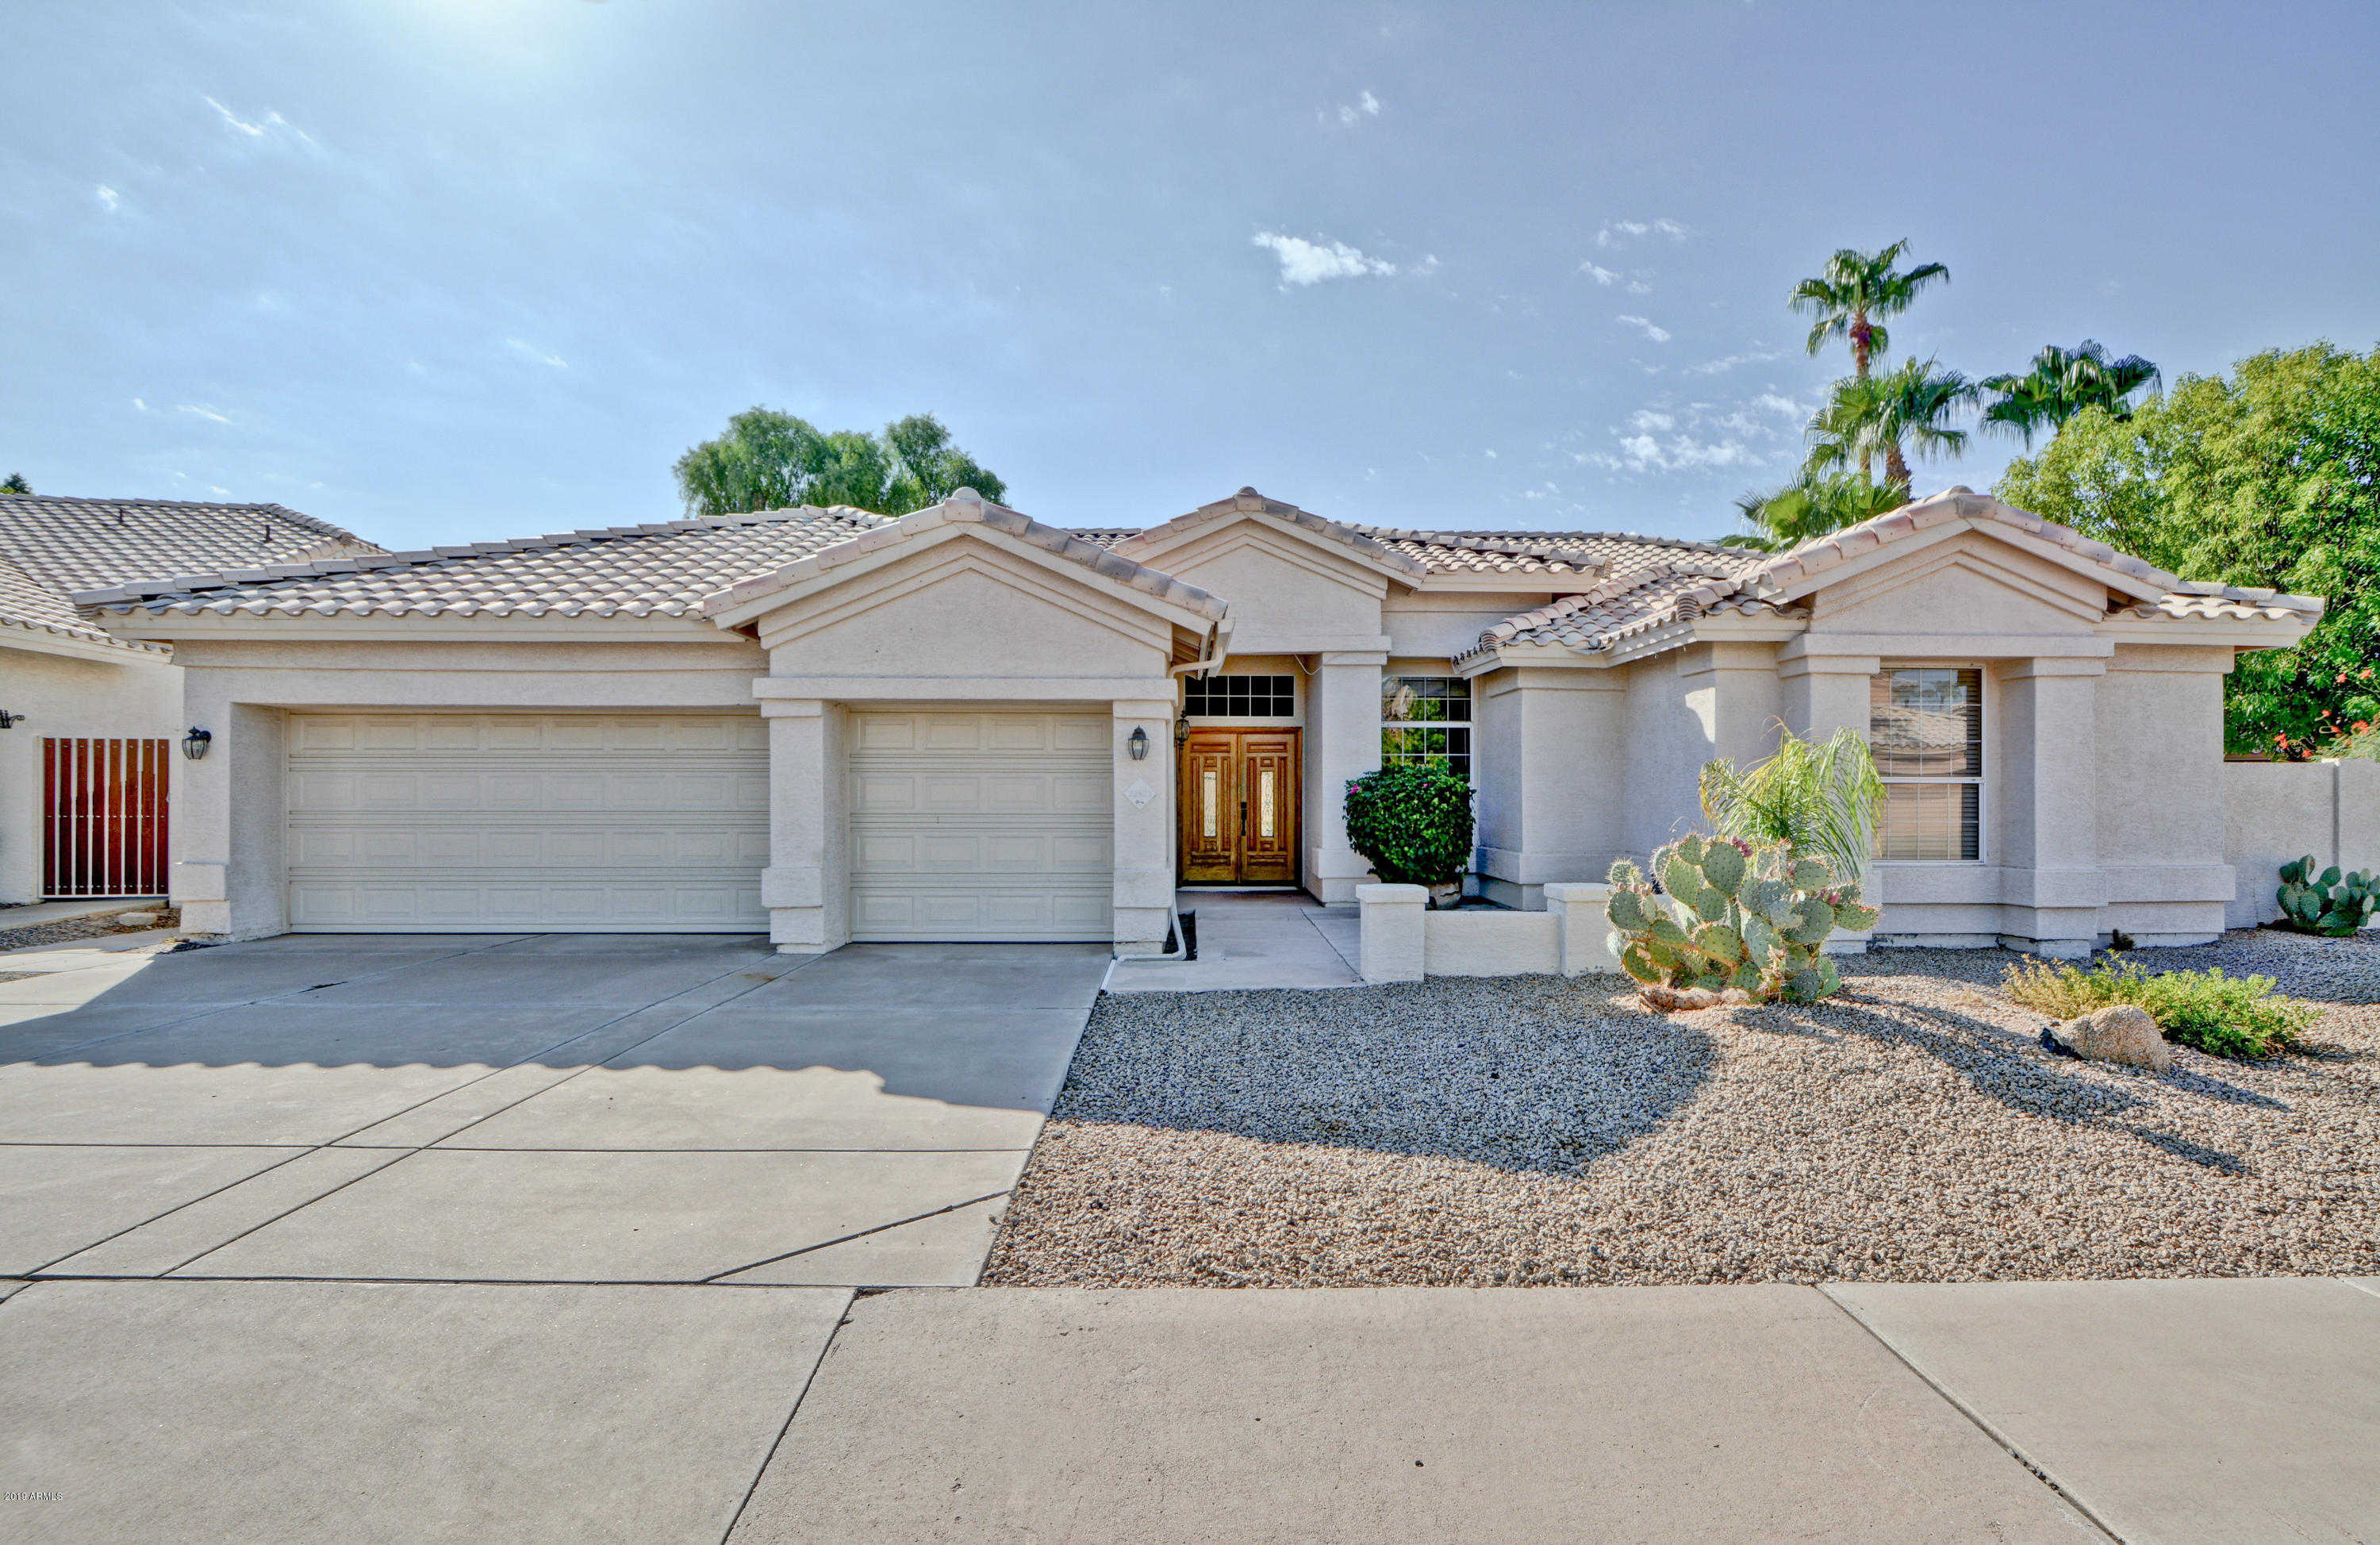 $375,000 - 3Br/3Ba - Home for Sale in Top Of The Ranch Lot 1-68 Tr A-g, Glendale